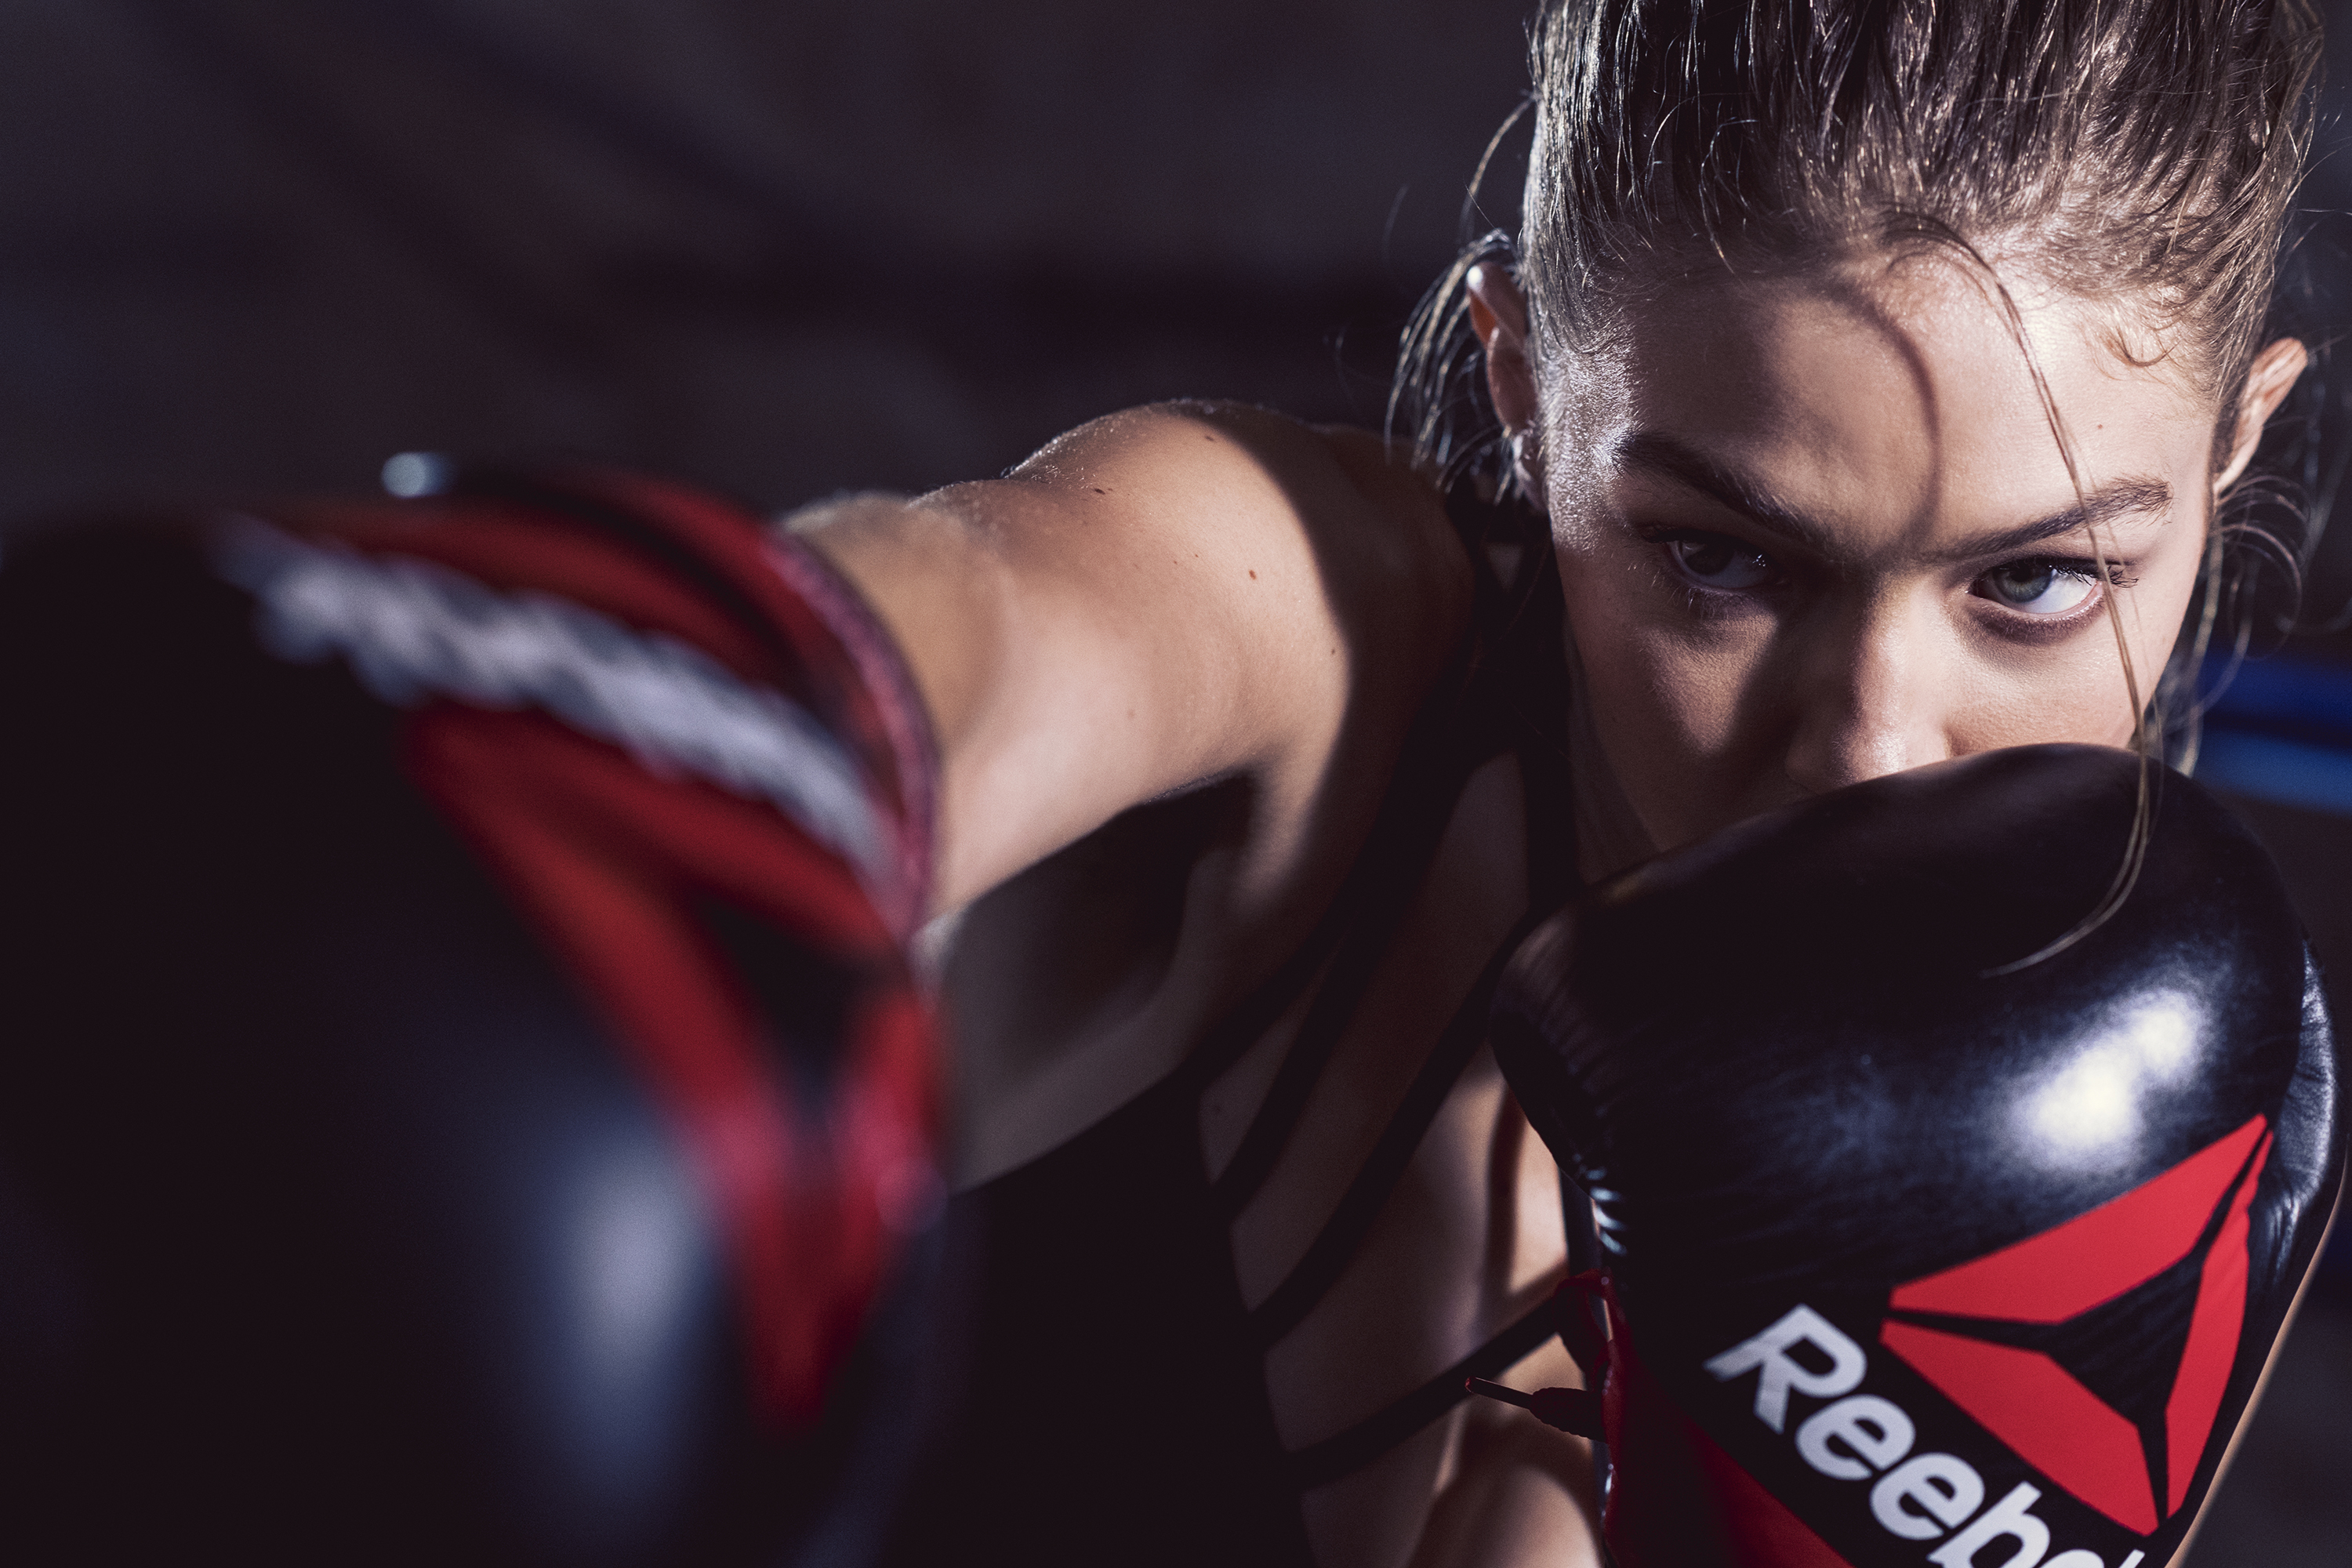 GIGI HADID JOINS FORCES WITH REEBOK TO TELL NEXT PHASE OF BE MORE HUMAN CAMPAIGN_4